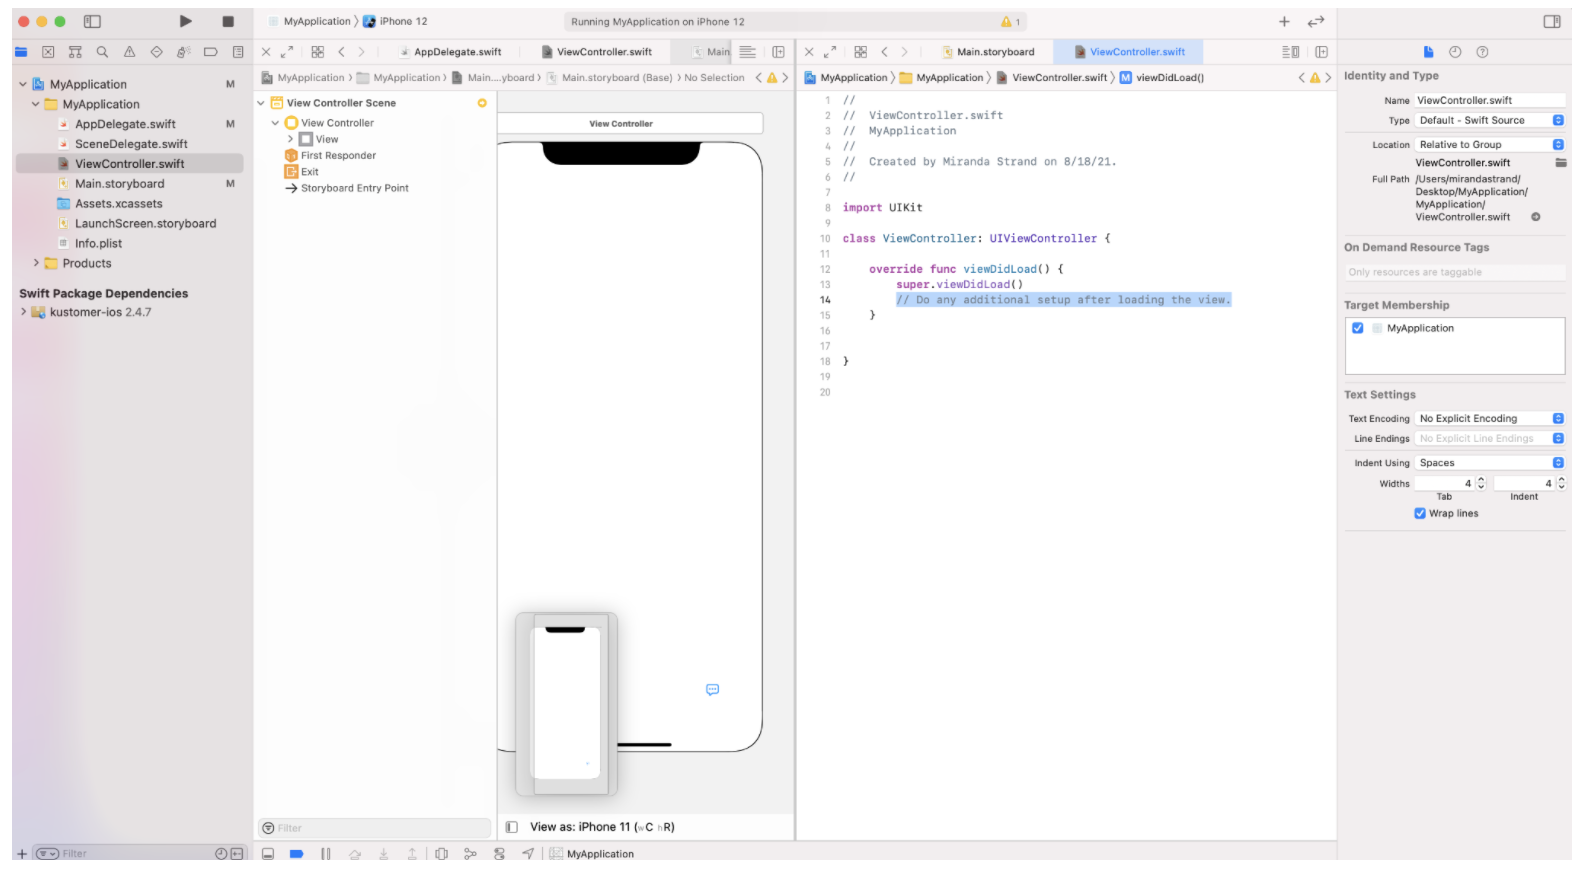 Side by side view of ViewController.swift and Main.storyboard.